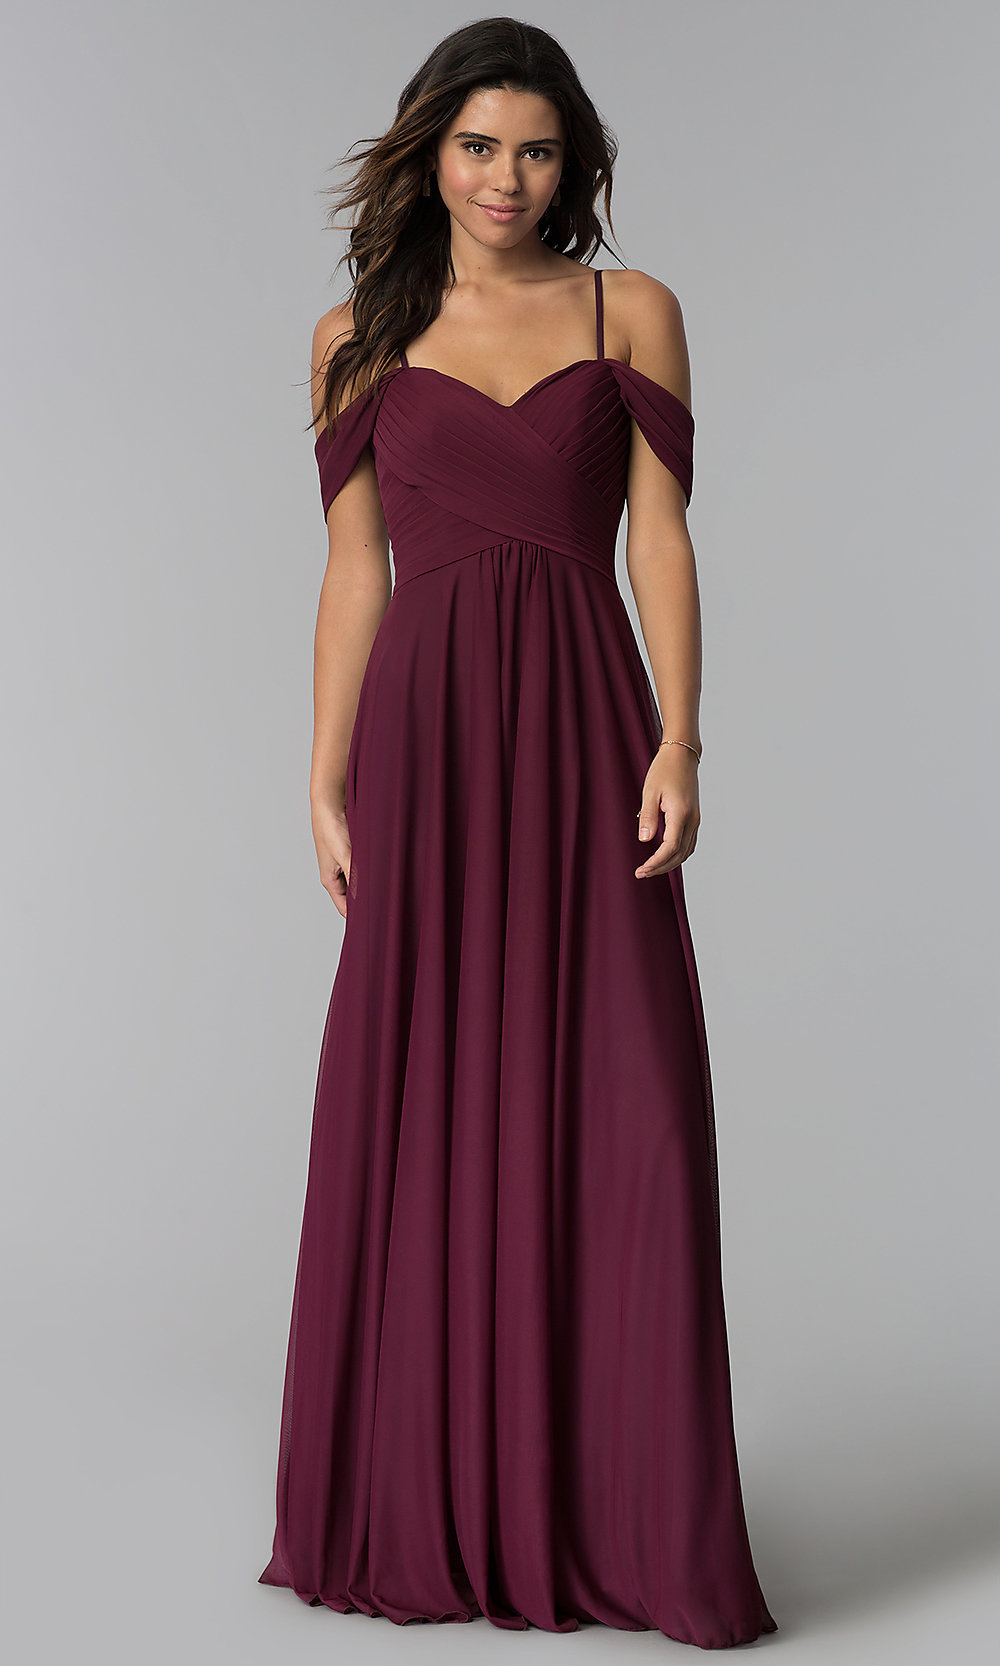 3dab9deaff79 Image of cold-shoulder long chiffon bridesmaid dress. Style: NM-BM-. Tap to  expand